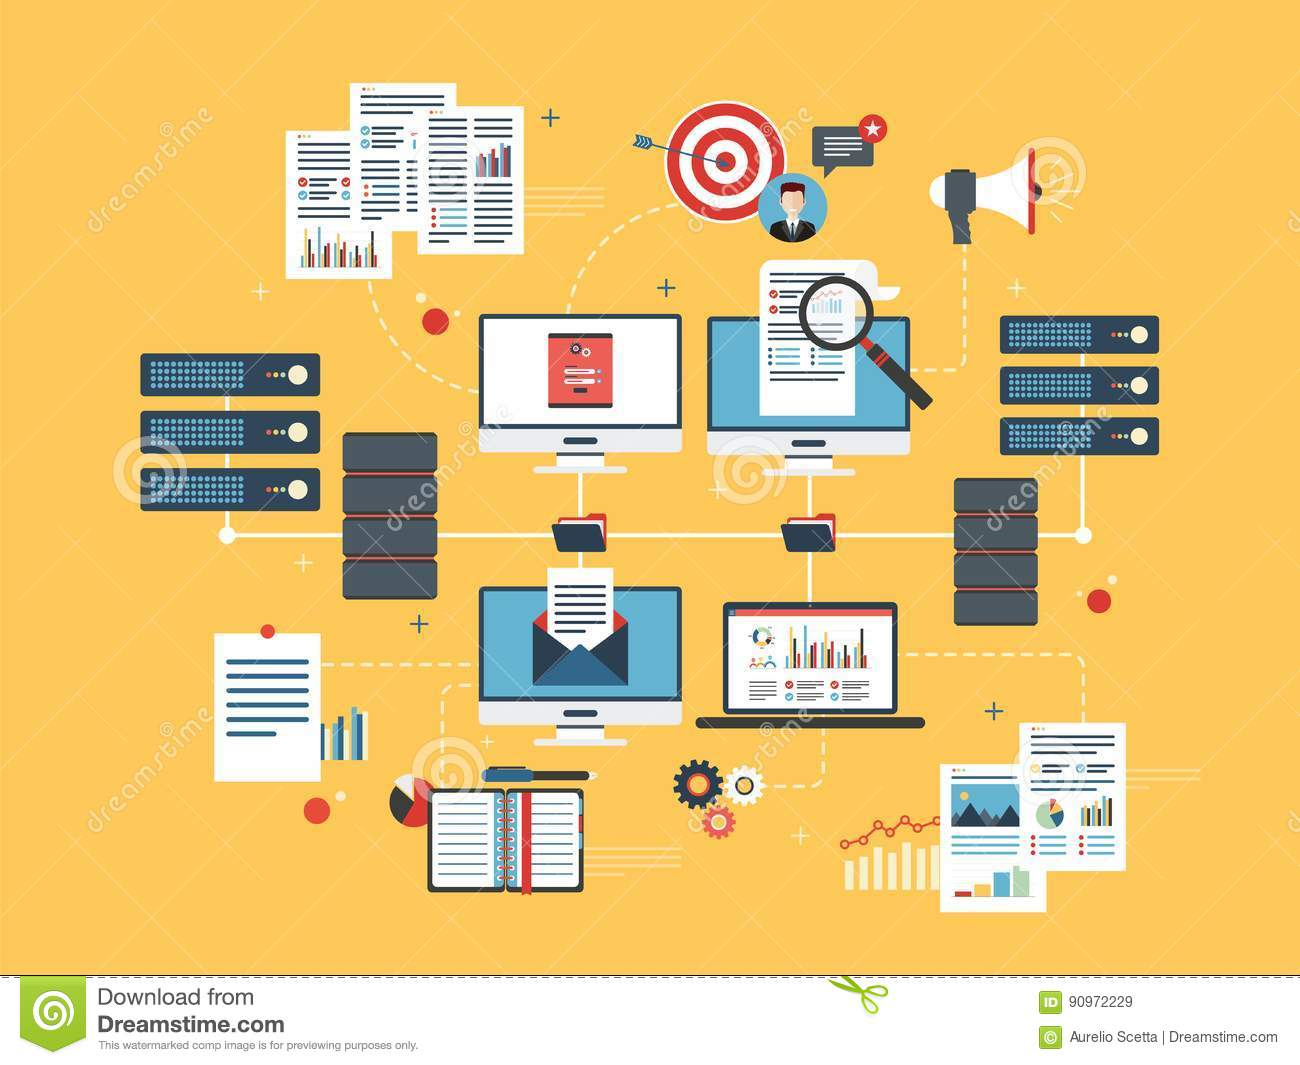 Cloud computing devices, data network and business intelligence.